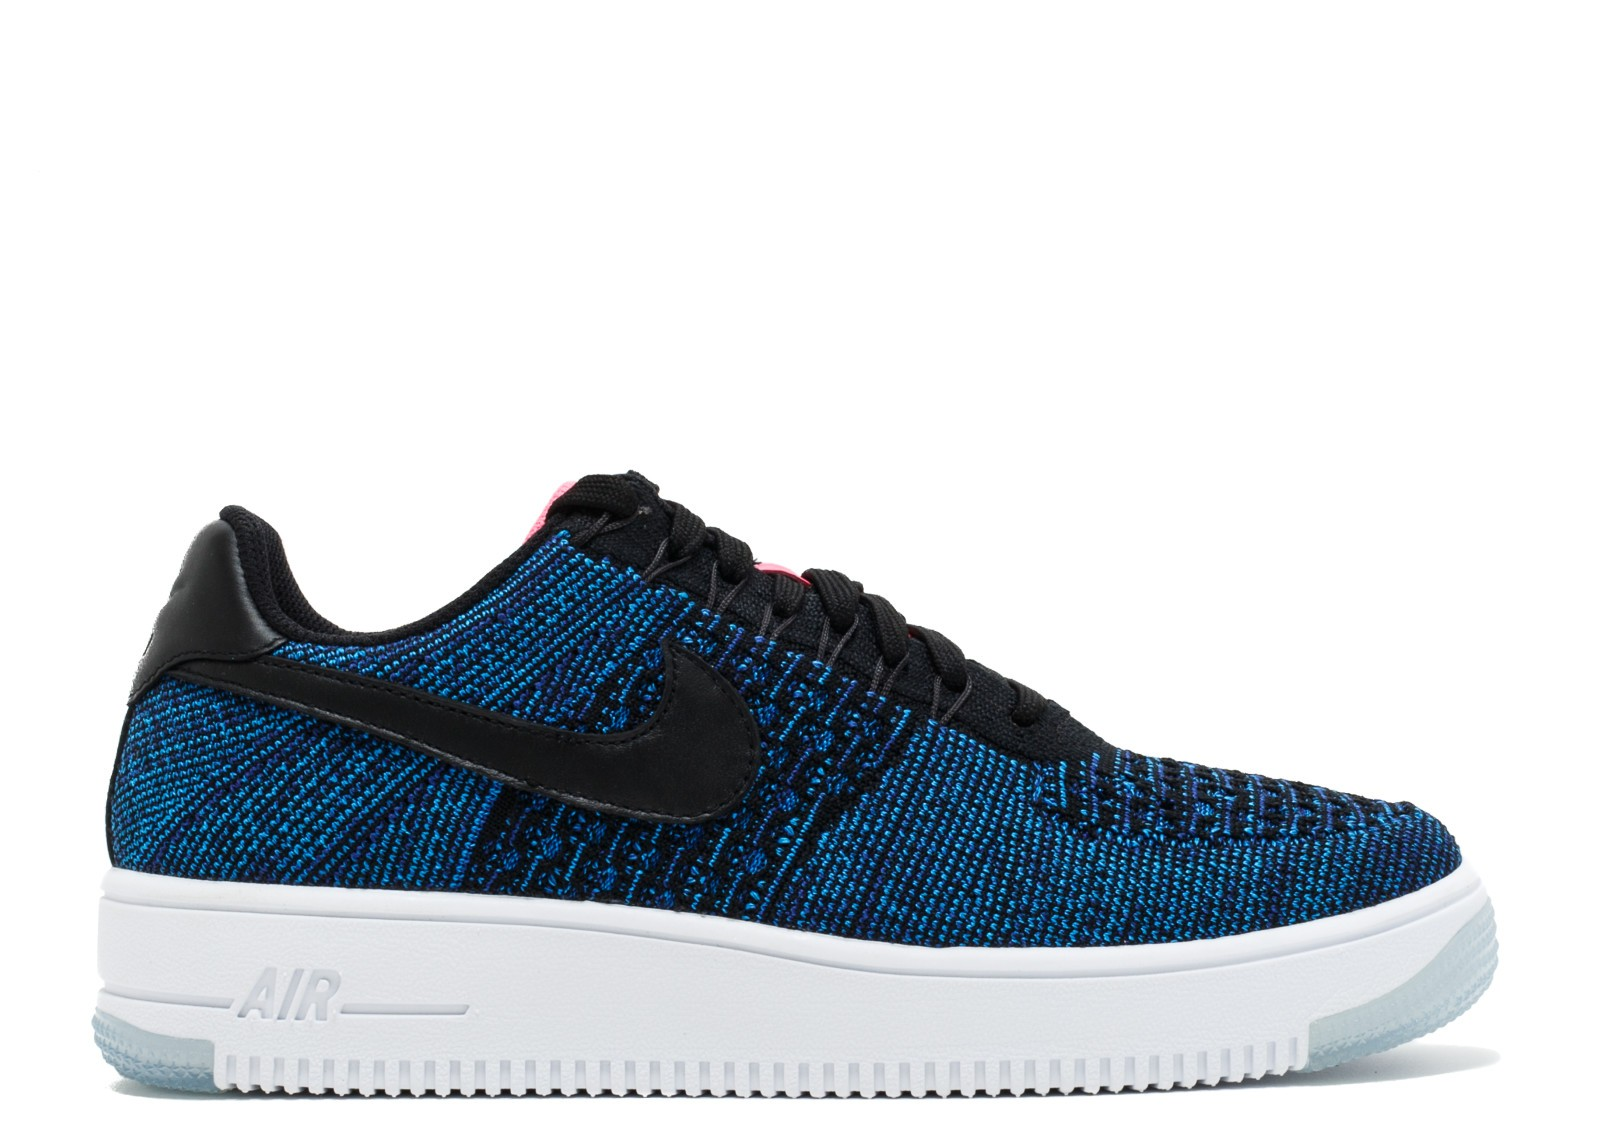 Nike Mujer Air Force 1 Flyknit Low (Negras/Azul/Rosas) 820256-003